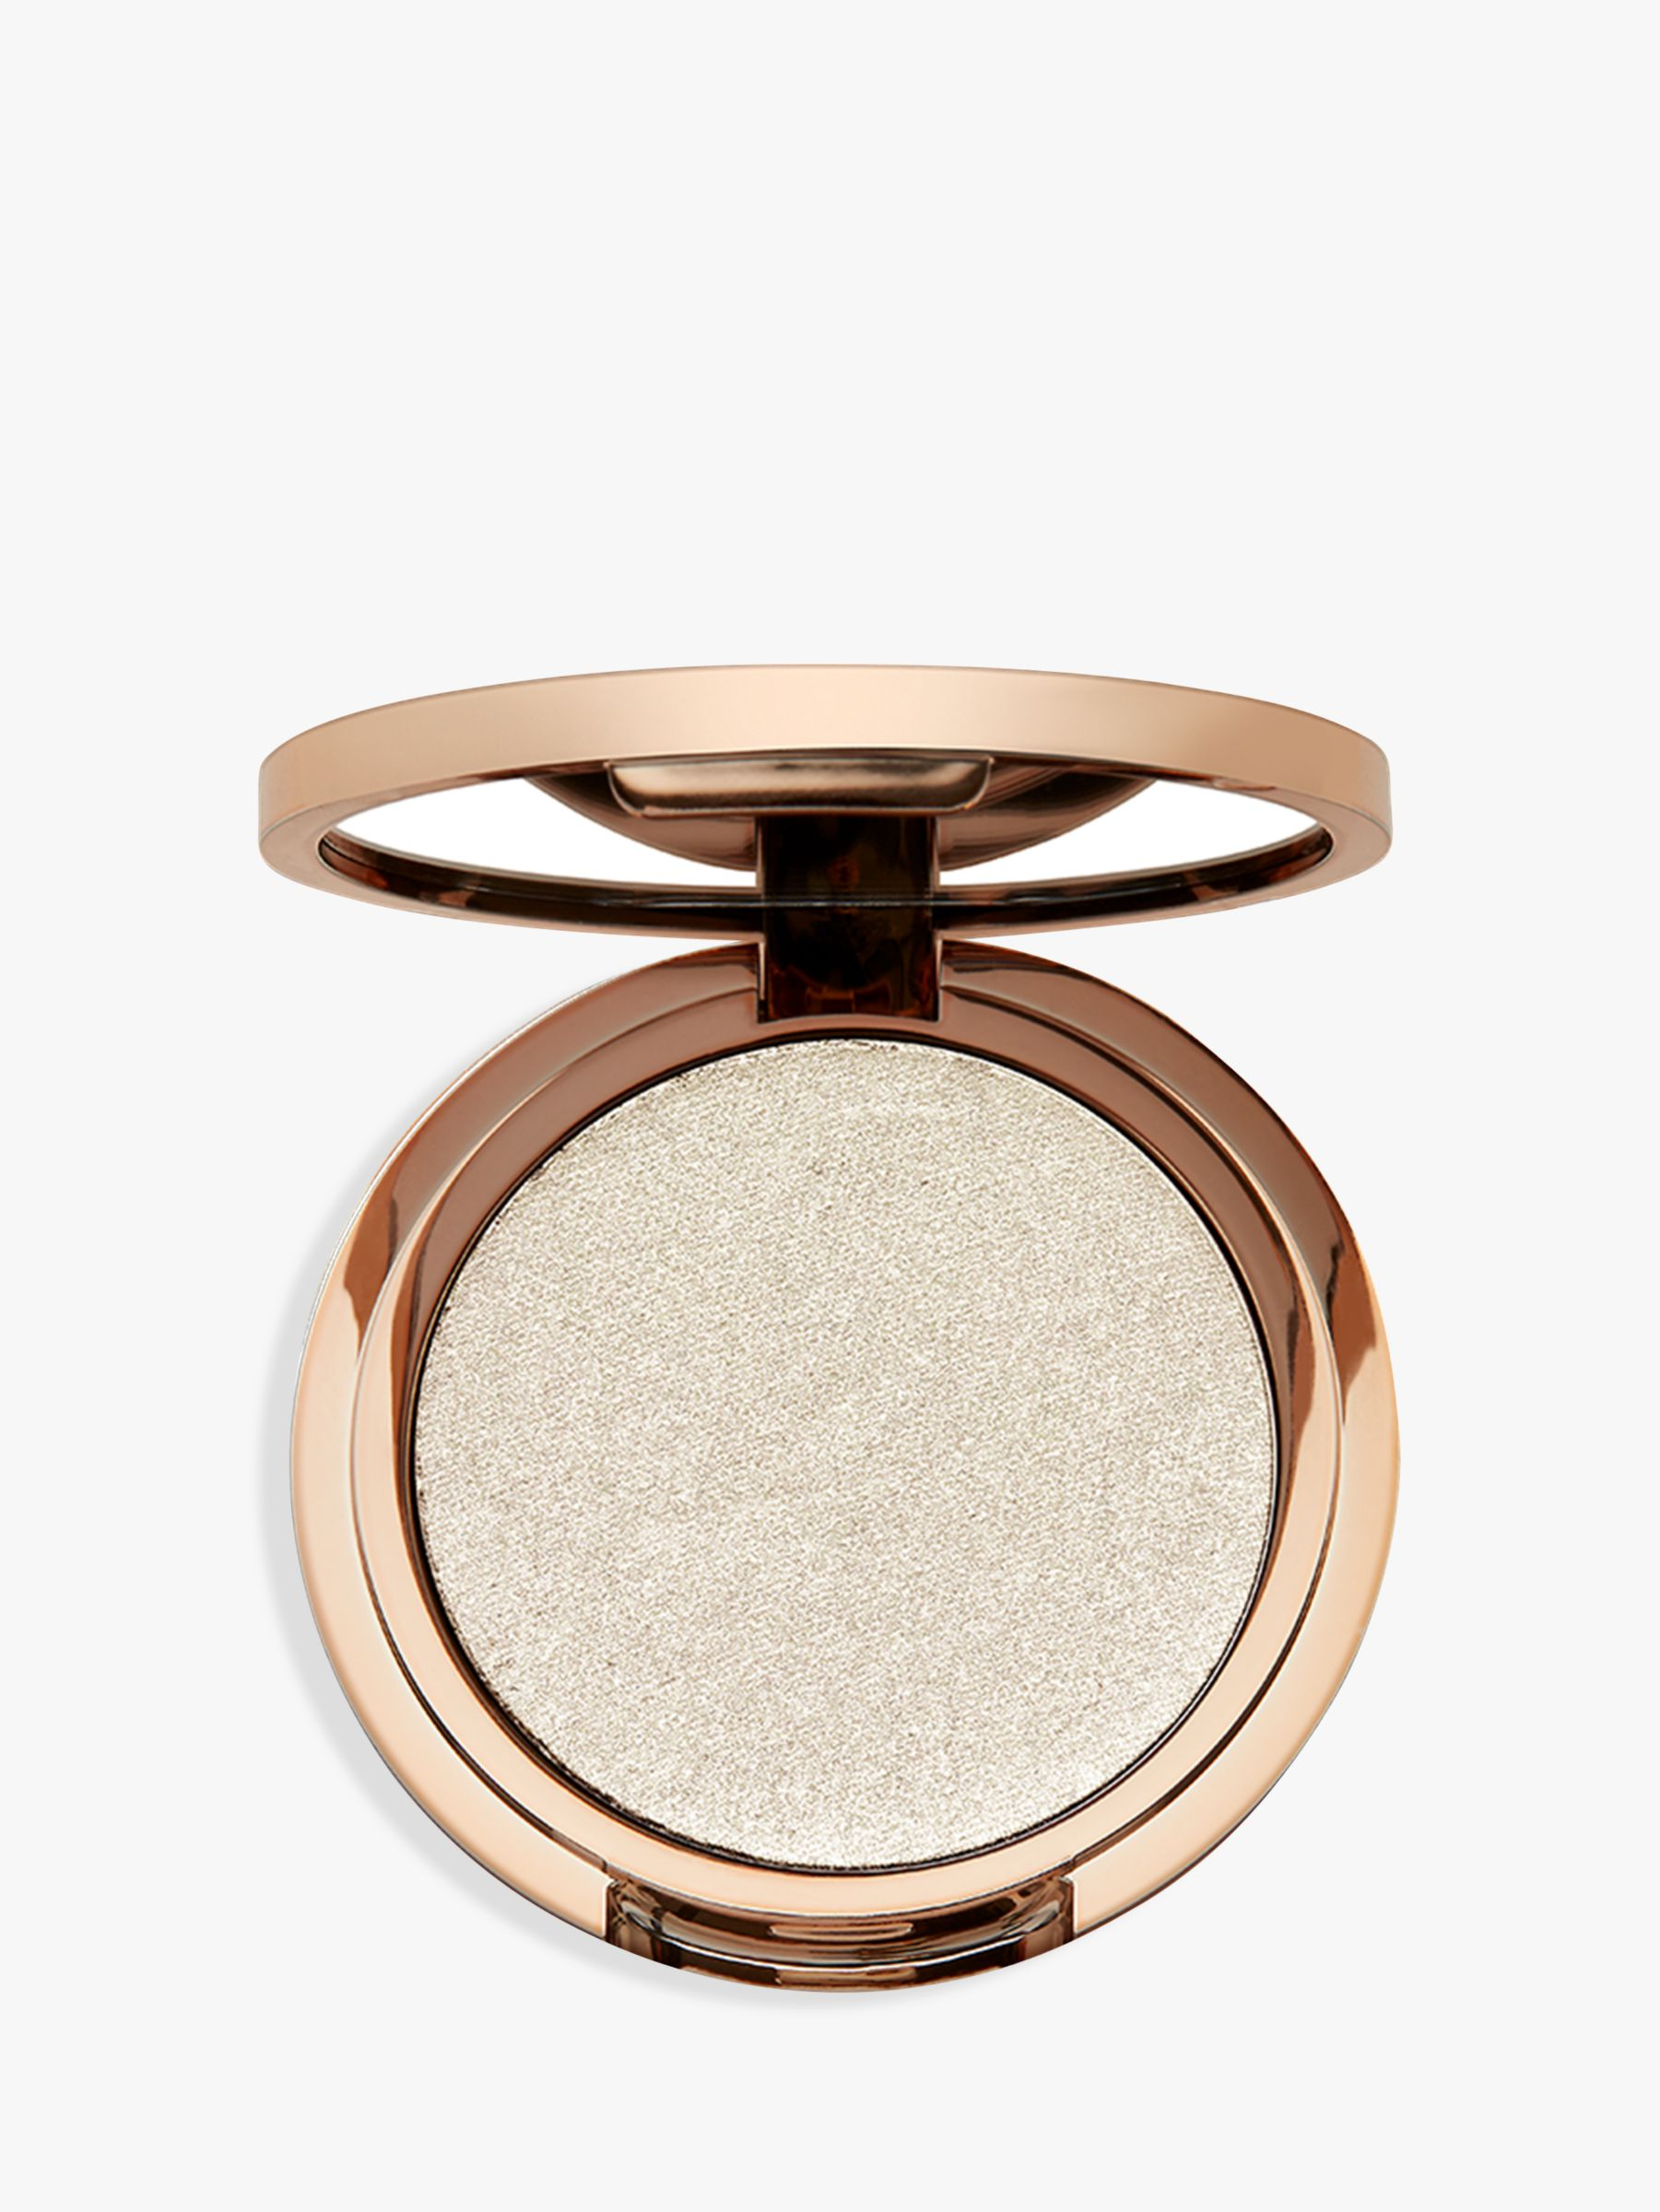 Nude by Nature Nude by Nature Natural Illusion Pressed Eyeshadow